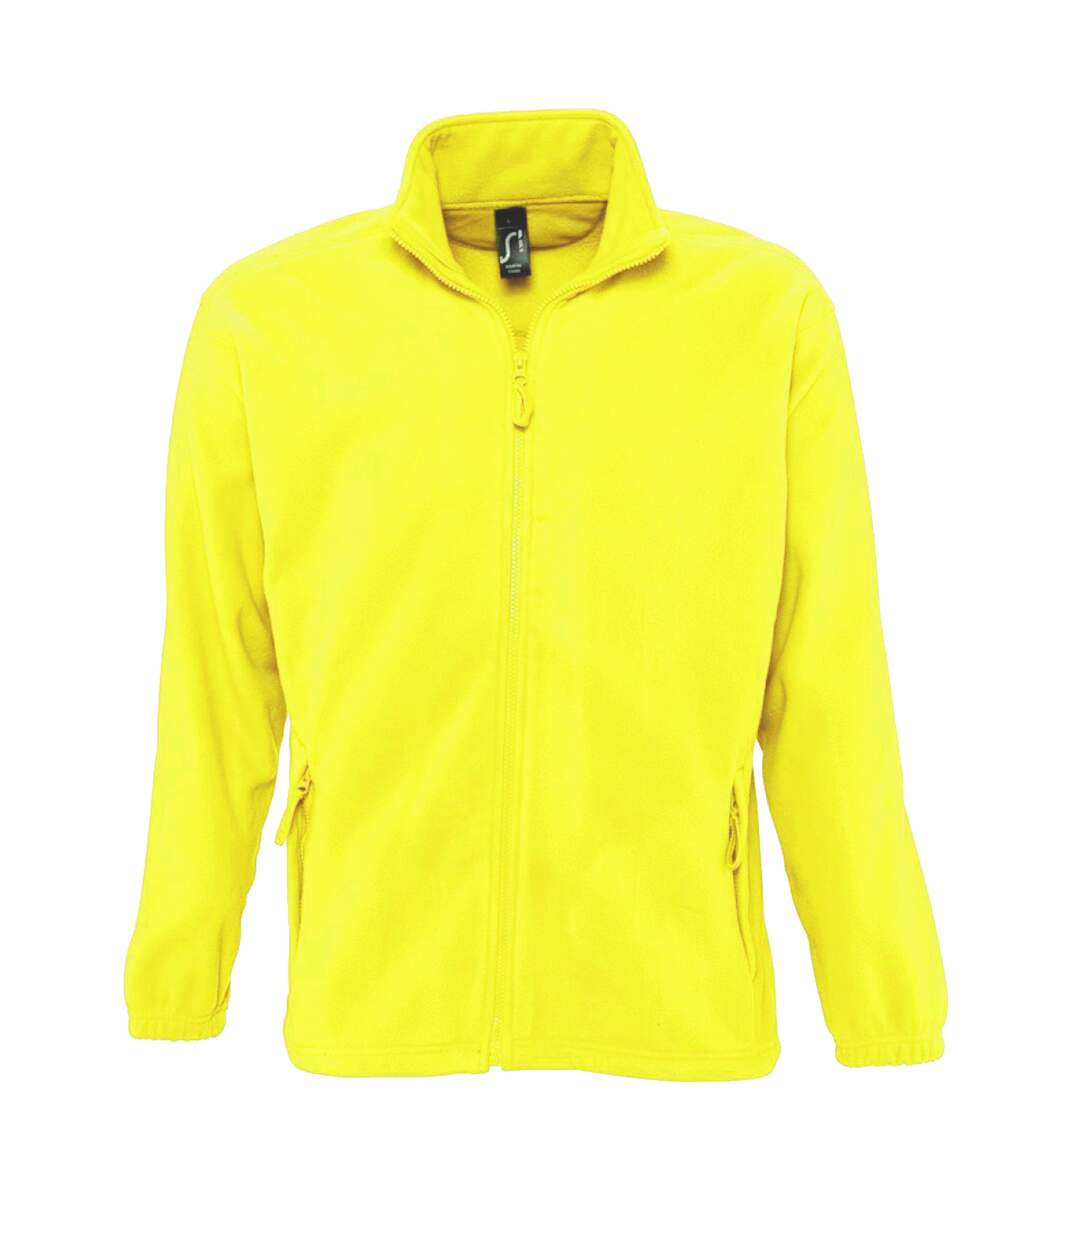 SOLS Mens North Full Zip Outdoor Fleece Jacket (Neon Yellow) - UTPC343